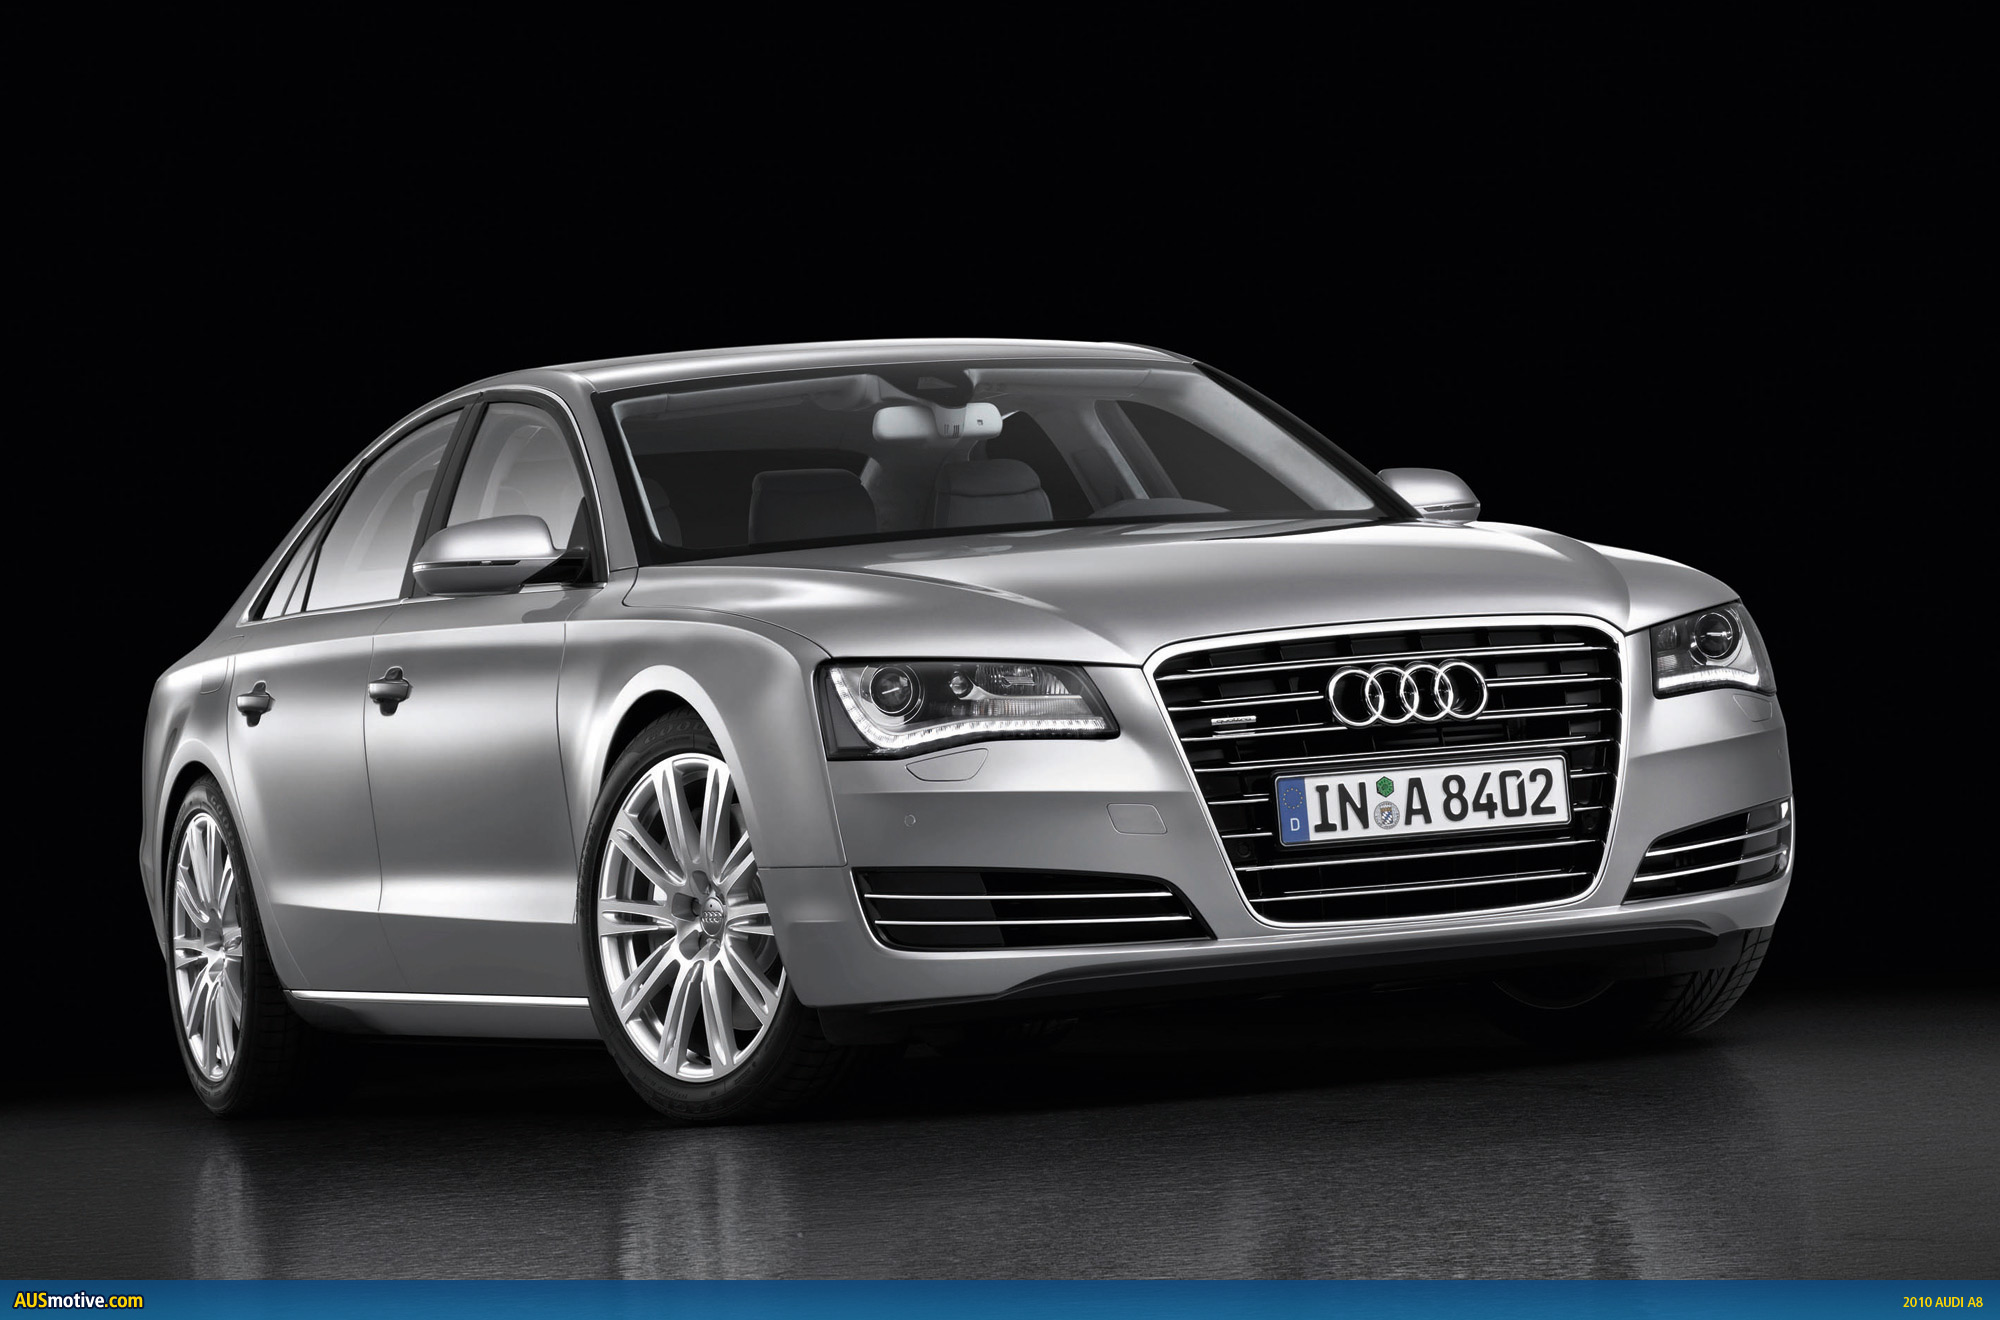 2010 audi a8 photo gallery. Black Bedroom Furniture Sets. Home Design Ideas